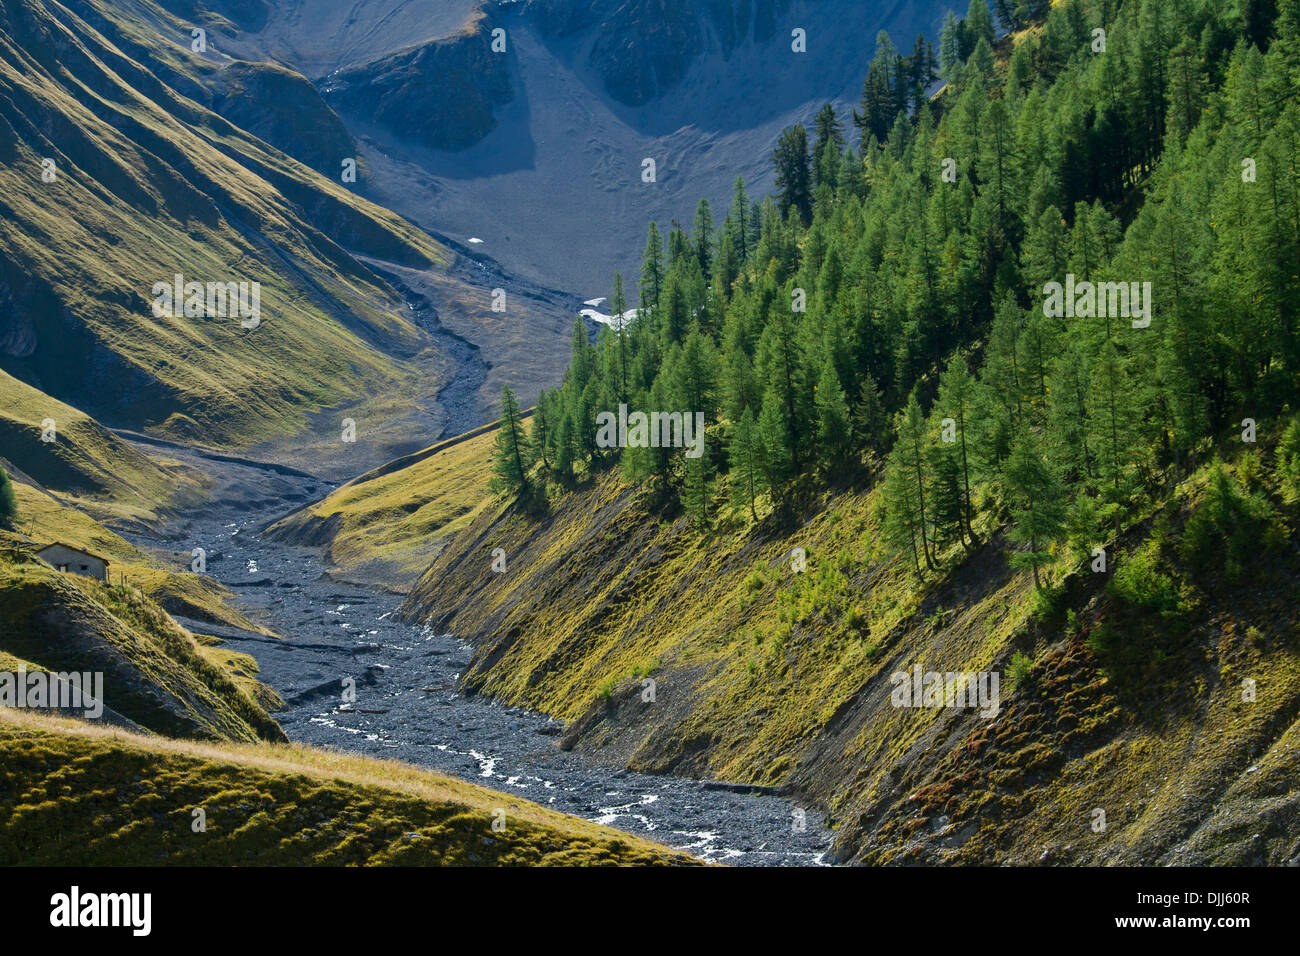 Riverbed of the river Ova da Trupchun in Val Trupchun, Swiss National Park at Graubünden / Grisons in the Alps, Switzerland - Stock Image